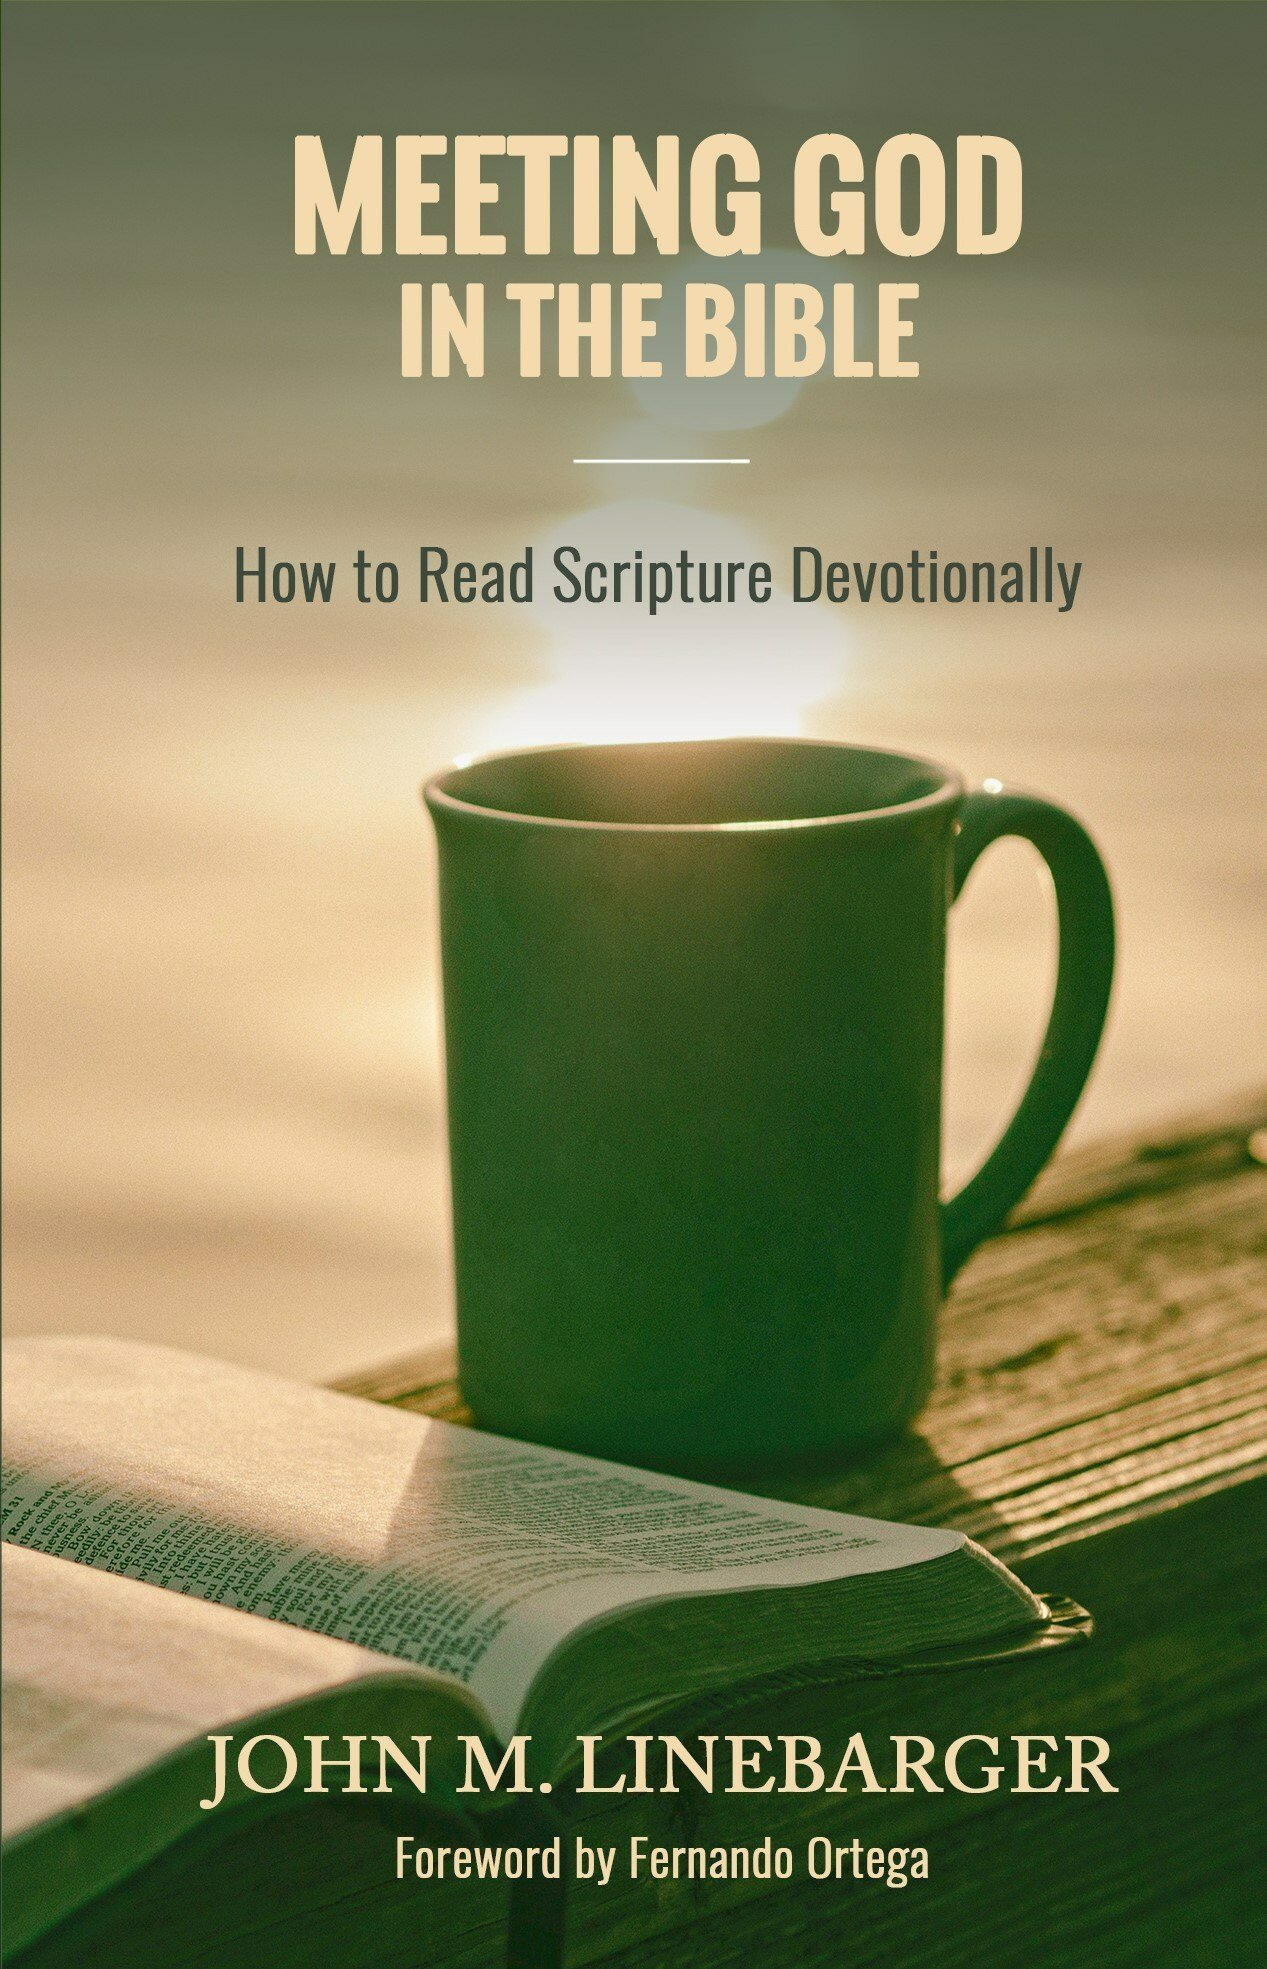 Meeting God in the Bible: How to Read Scripture Devotionally